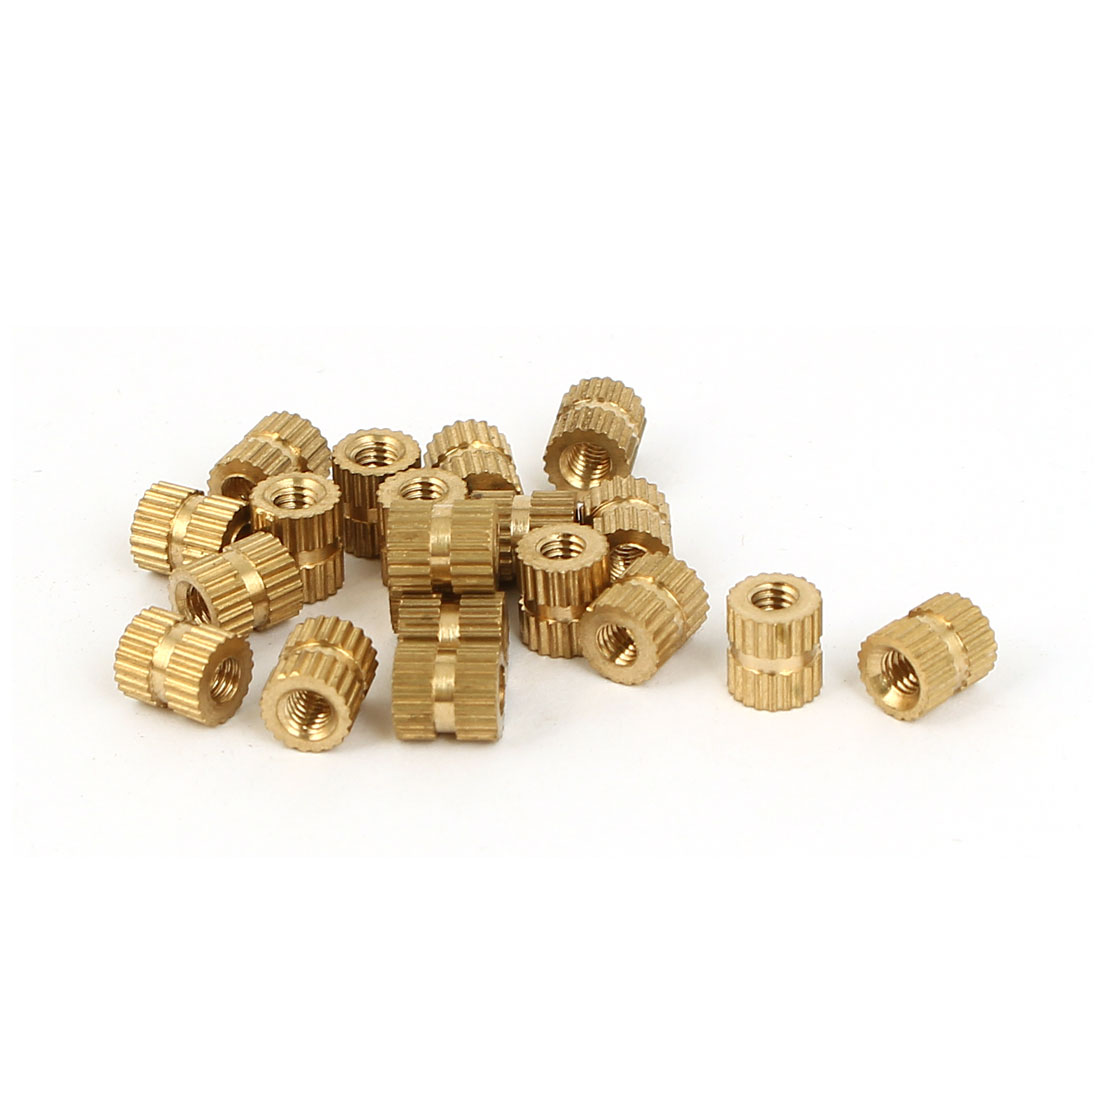 M3 x 5mm x 6mm Female Threaded Insert Embedded Brass Knurled Nuts Gold Tone 20 Pcs